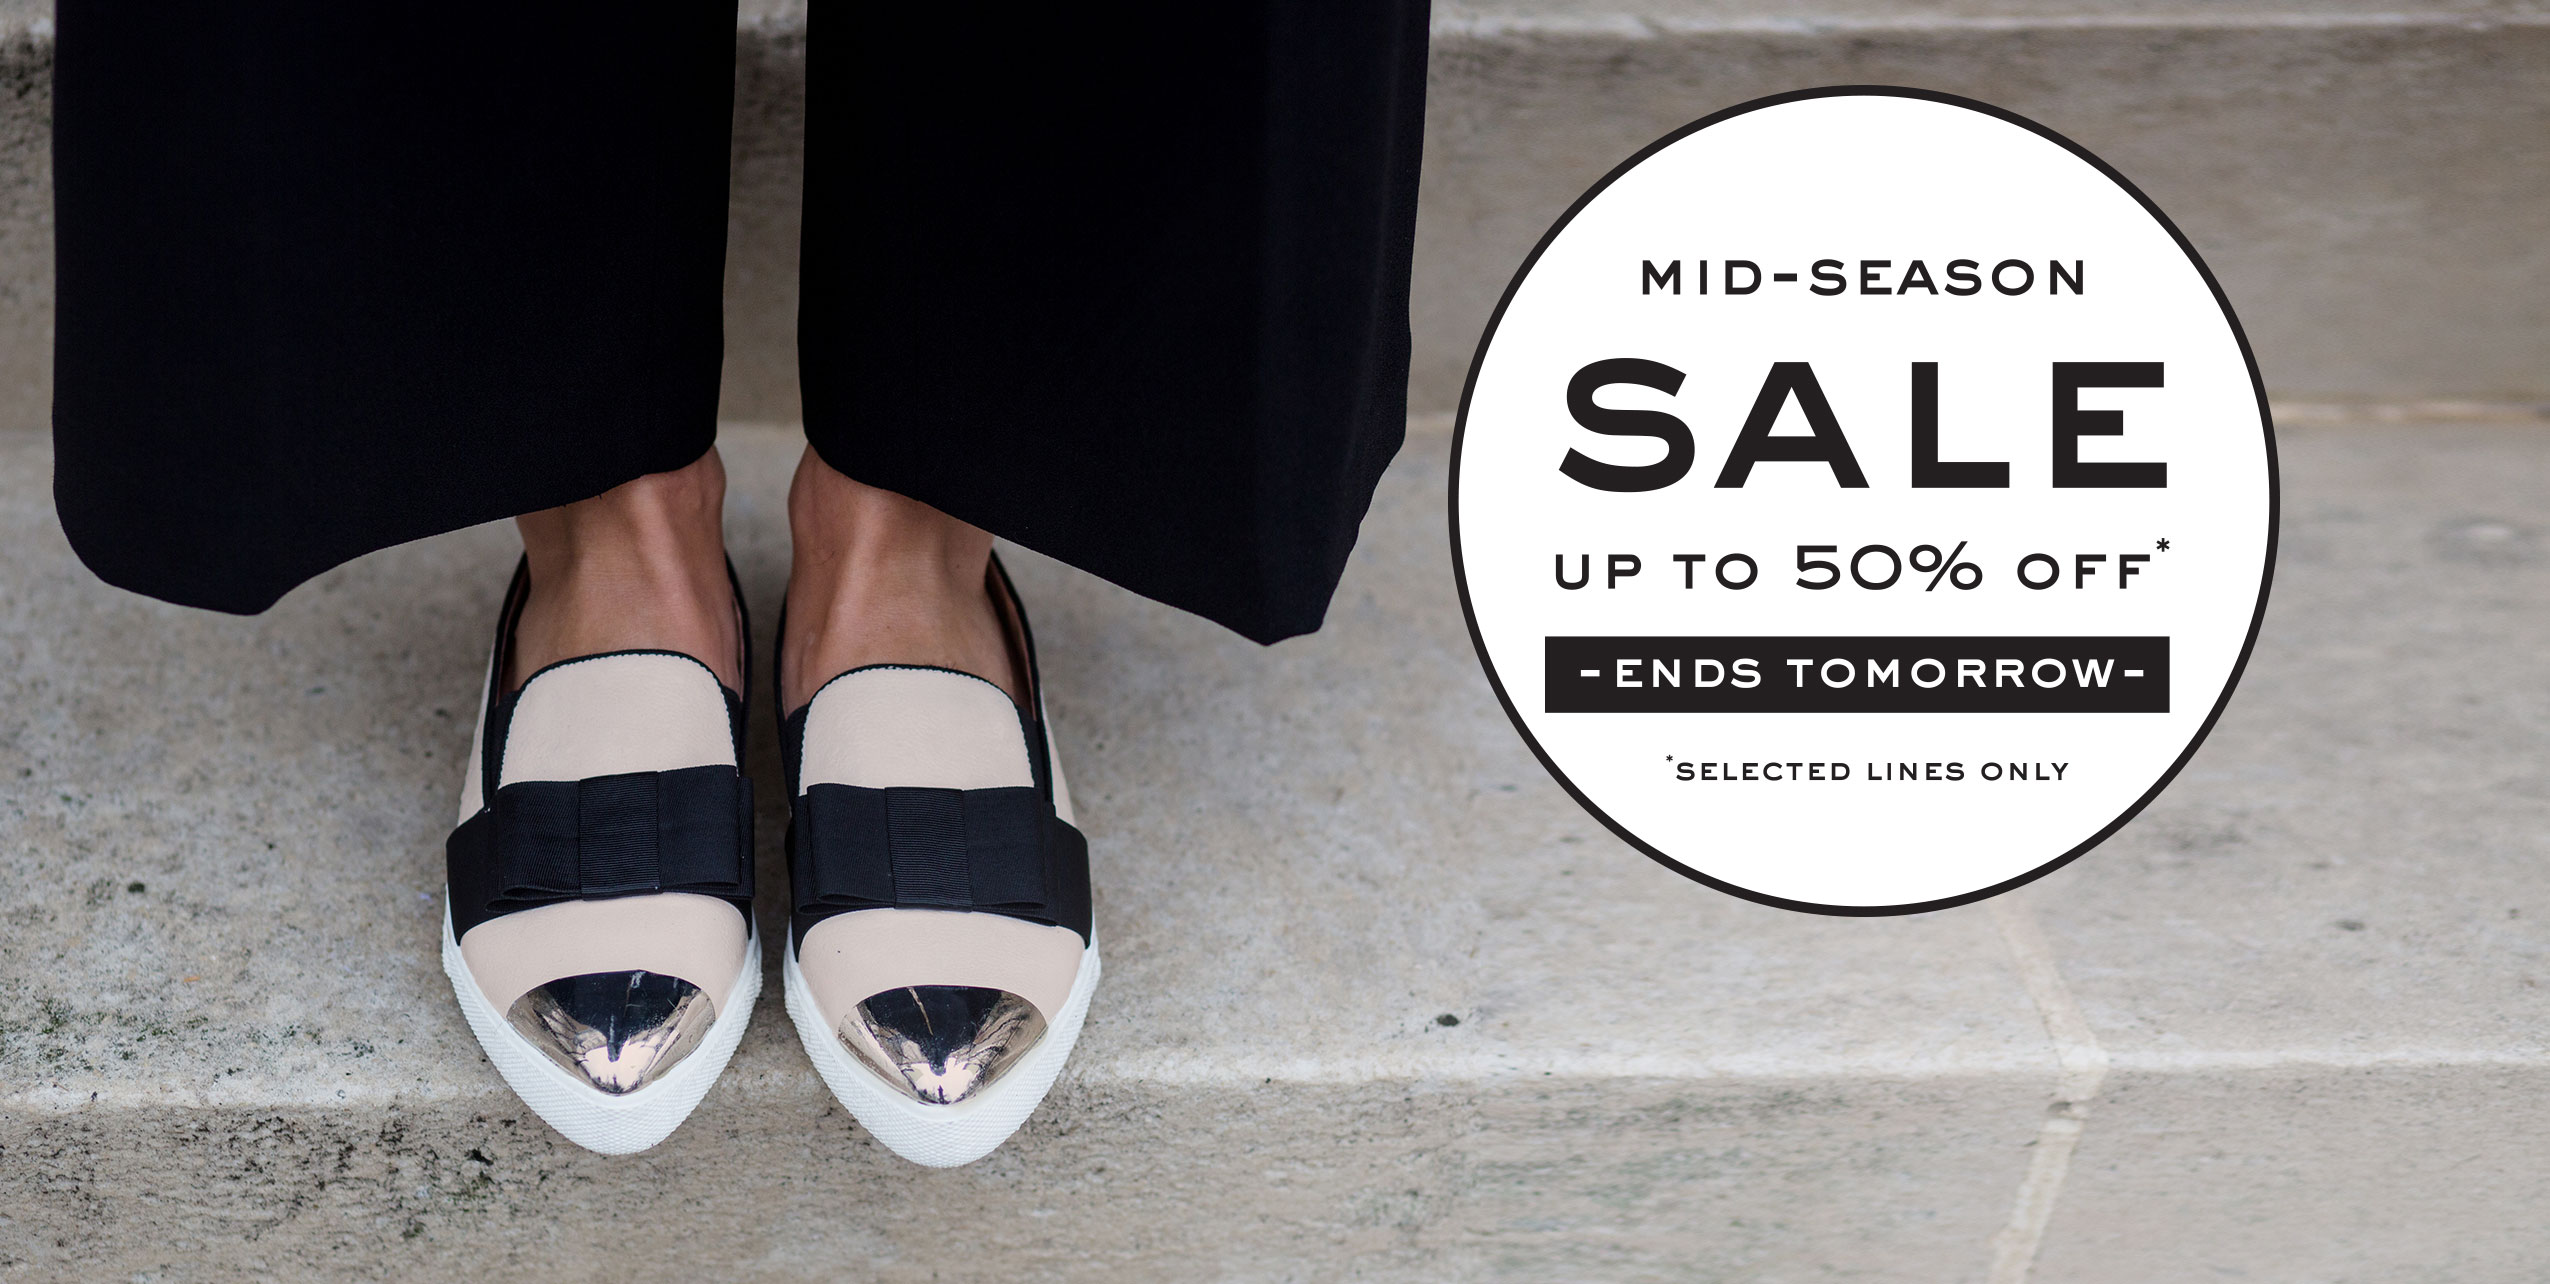 Mid-Season Sale - Up to 50% off - Ends Tomorrow